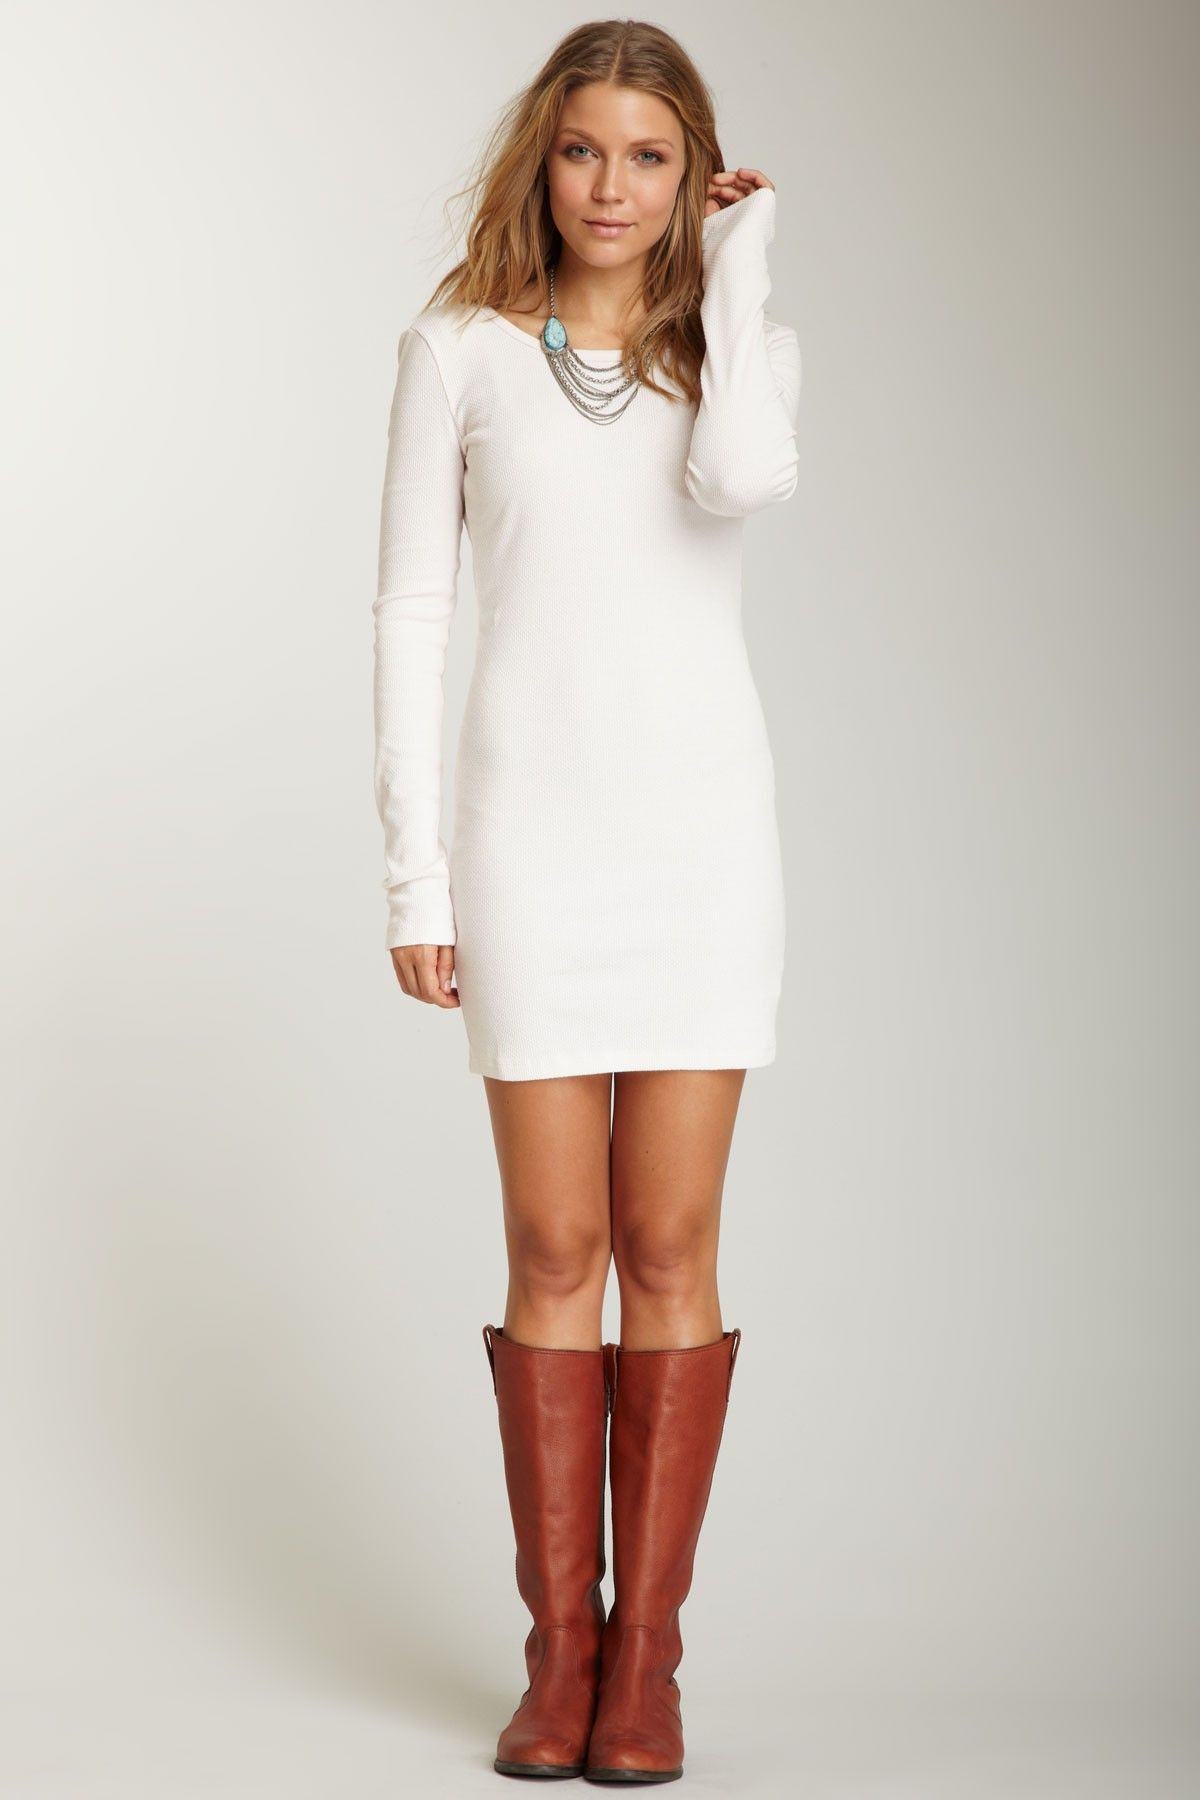 White dress and boots for winter. LOVE!!!!